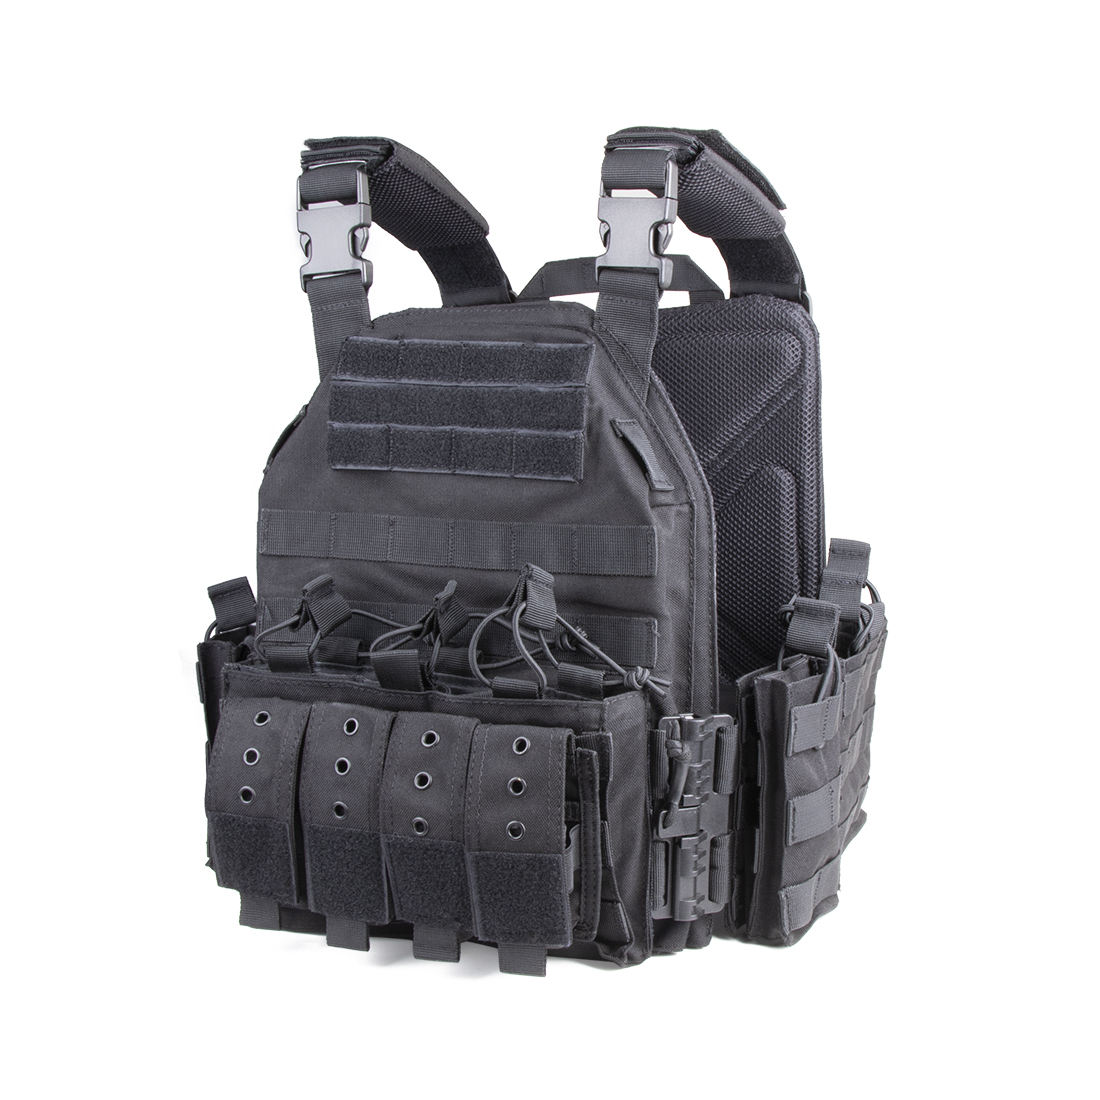 NcDe Molle Tactical Vest-104 Adjustable Plate Carrier 1000D Nylon With Quick Release Version